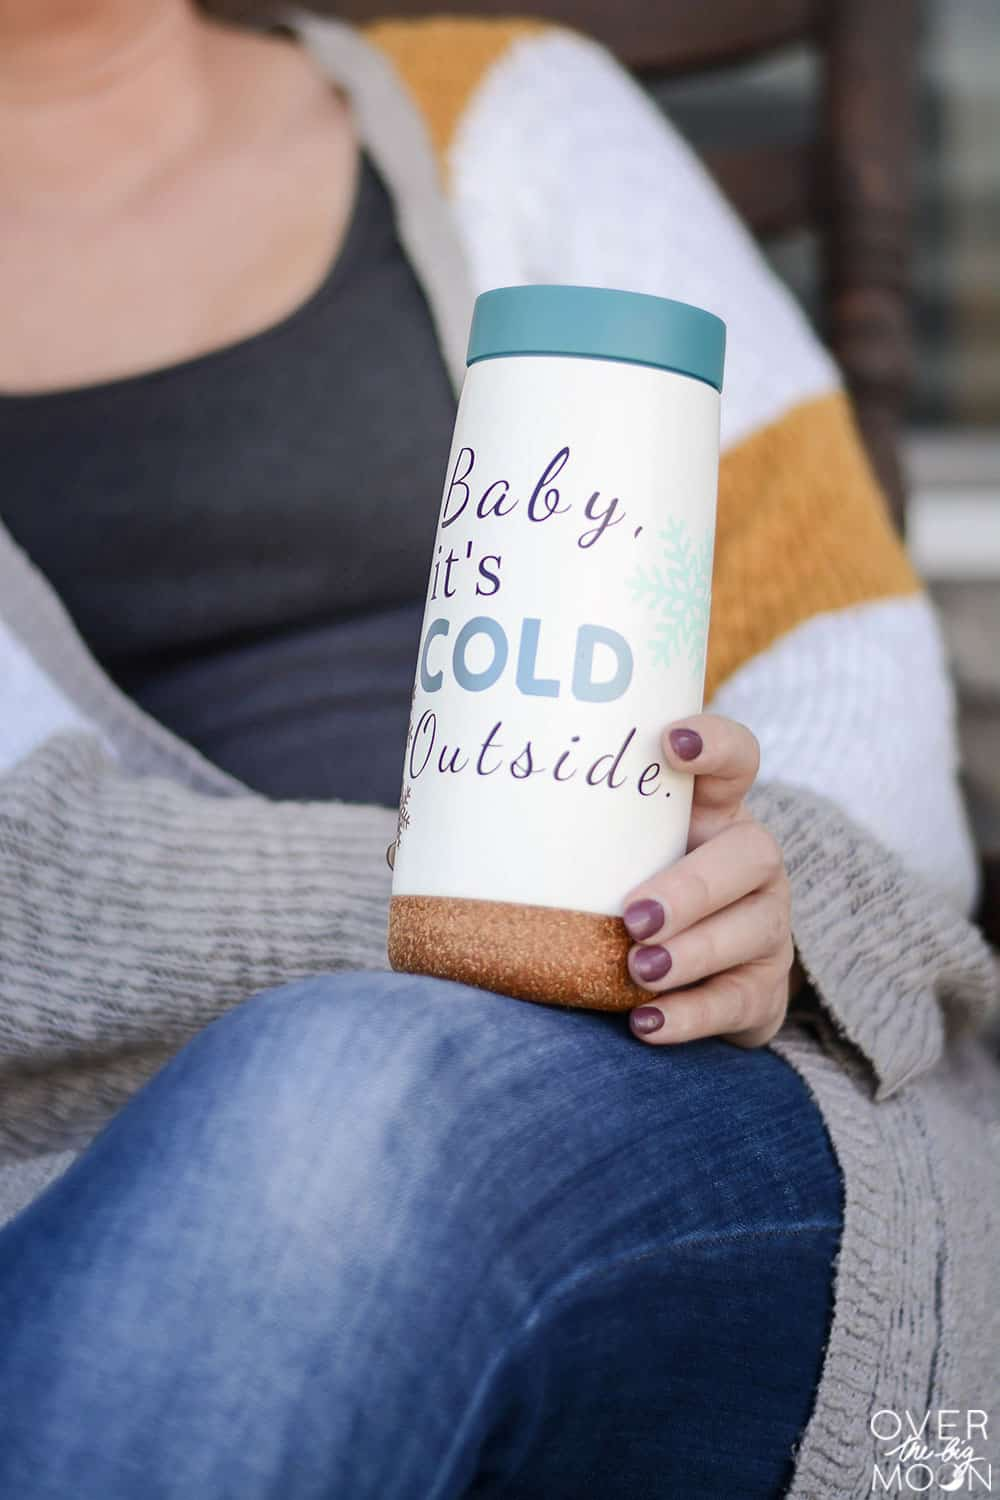 Vinyl Designs for Tumblers - 10 designs perfect for moms! From overthebigmoon.com #cricutmade #cricut #vinyl #babyitscoldoutside #tumblers